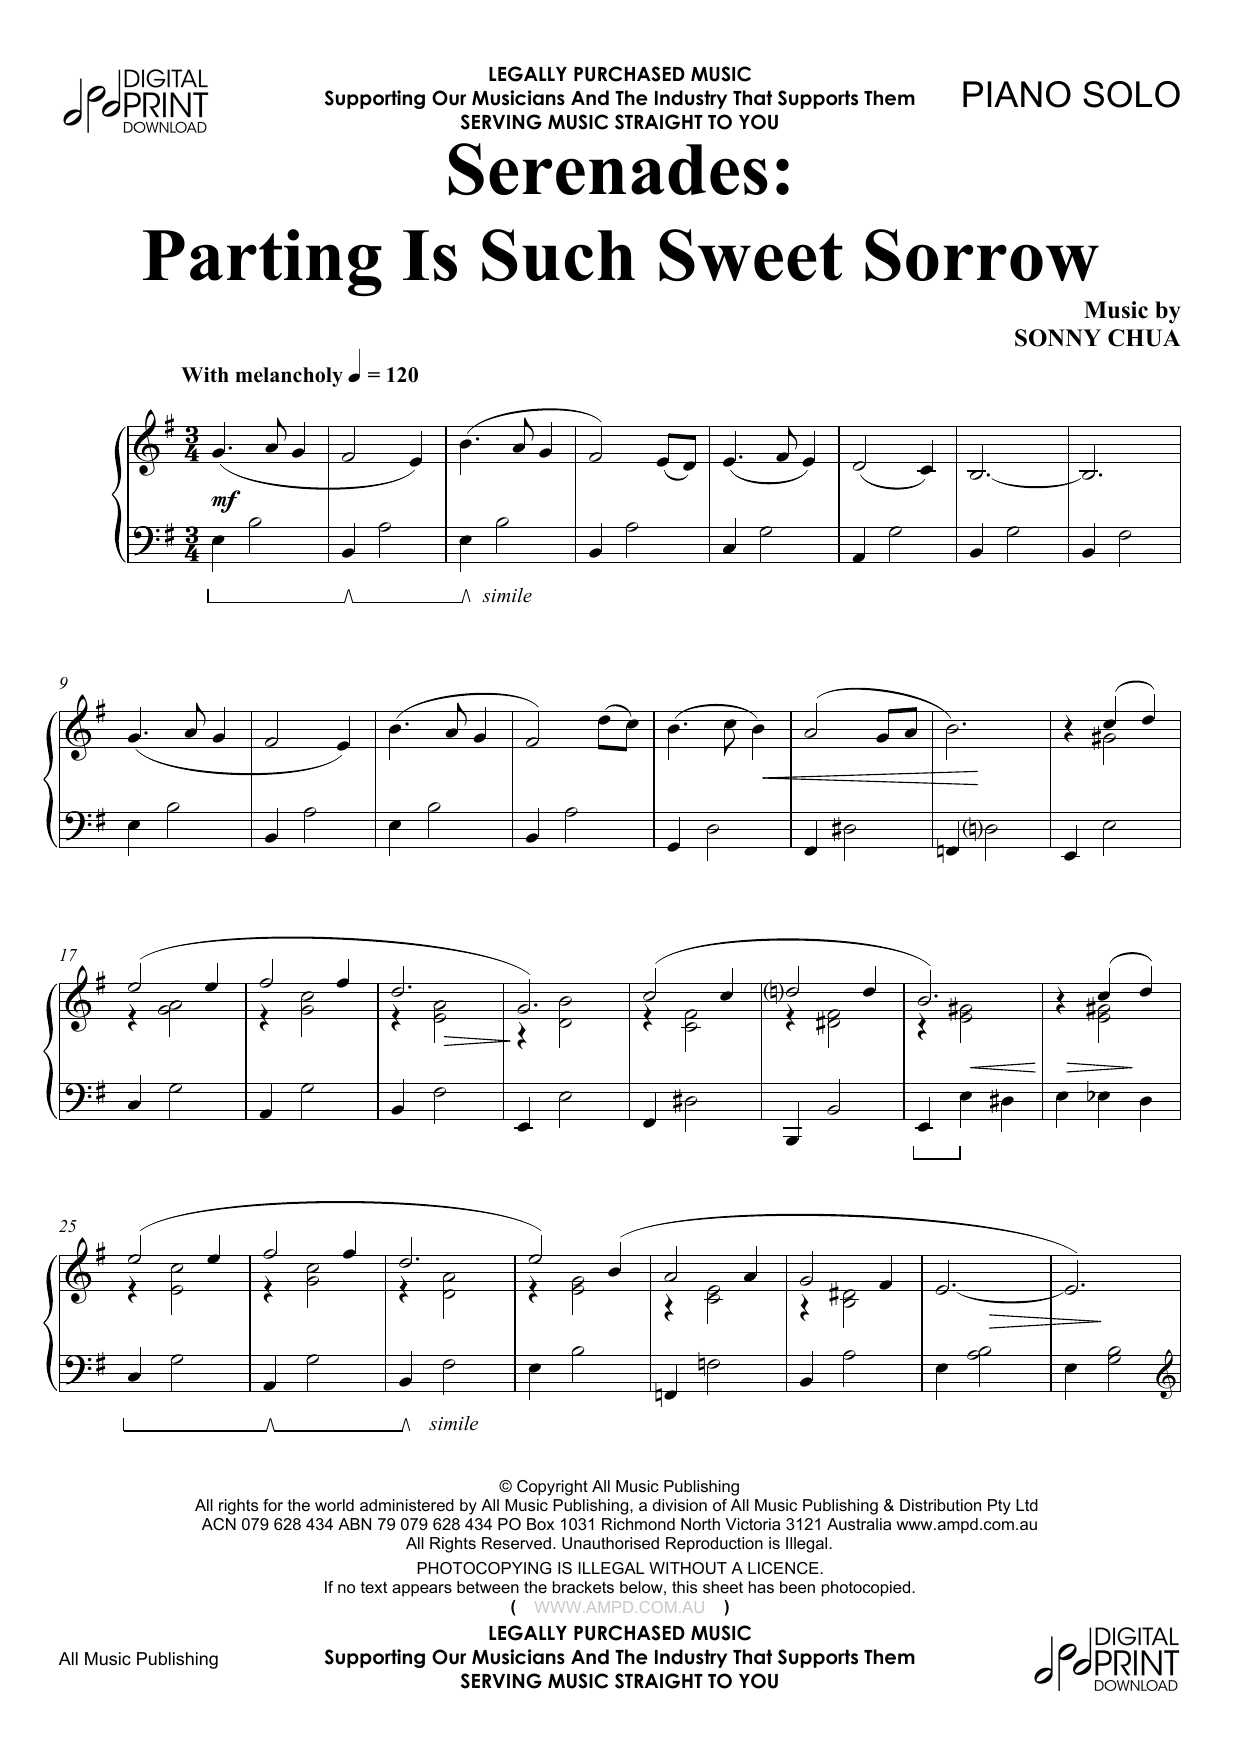 Serenades Parting Is Such Sweet Sorrow Sheet Music